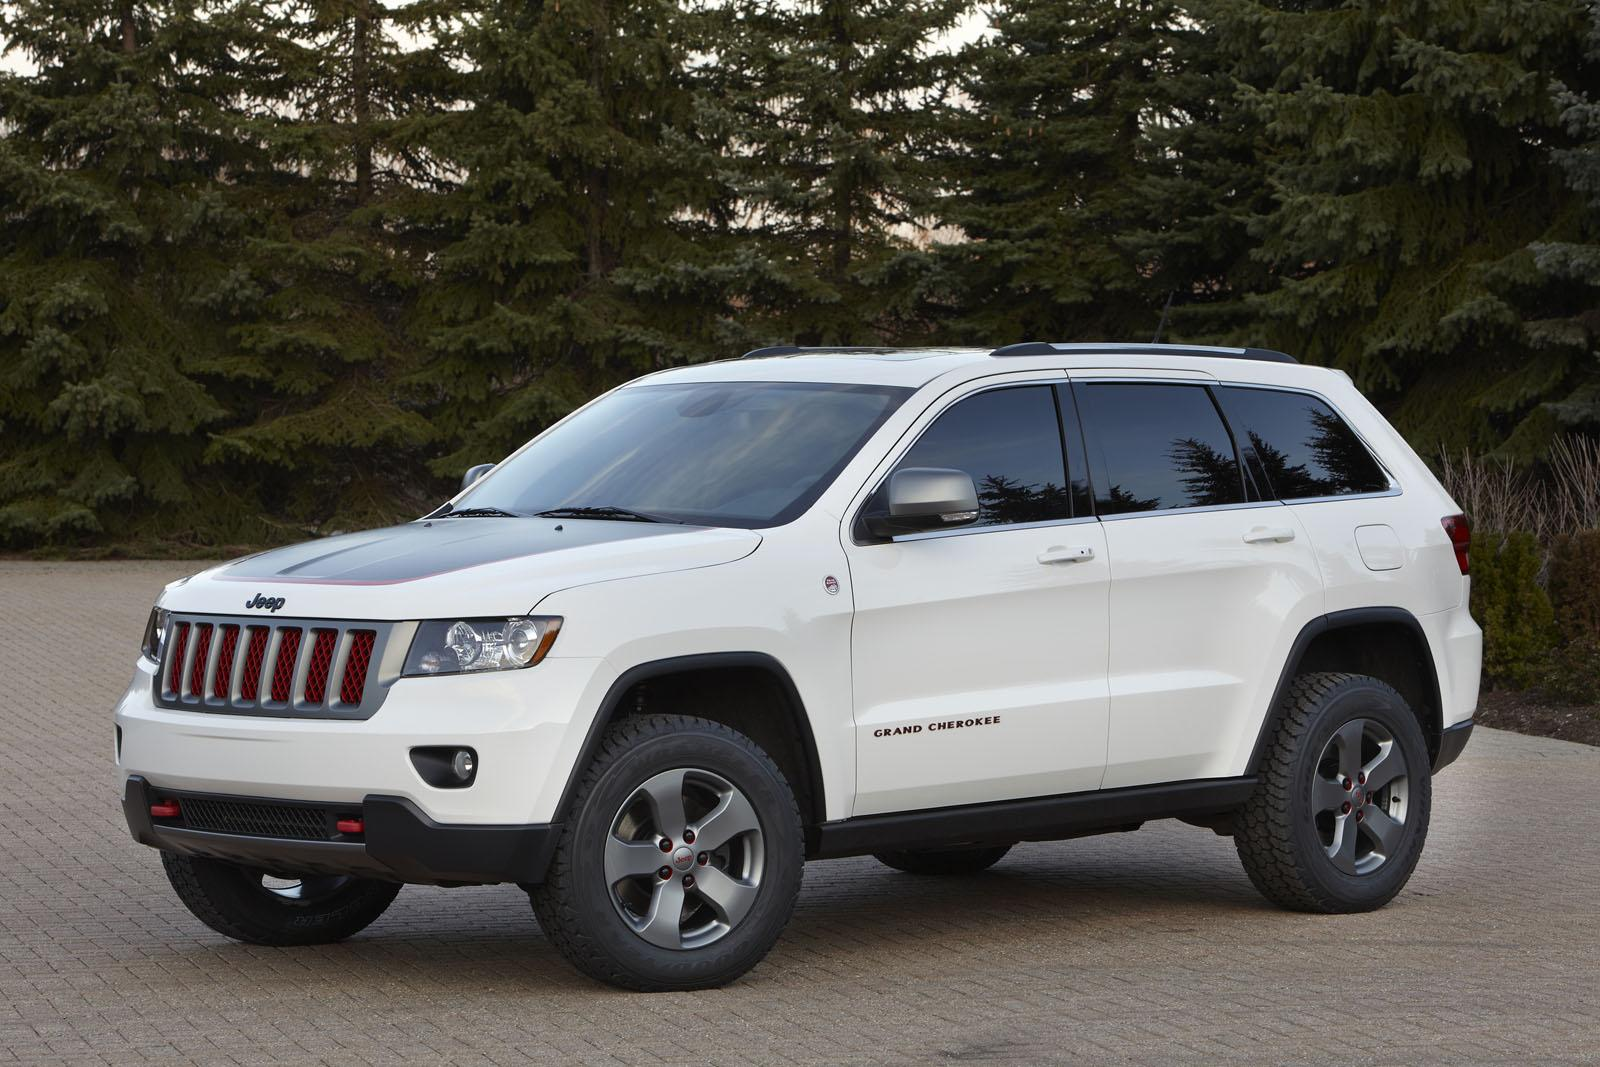 Jeep Grand Cherokee Trailhawk Concept on Jeep Grand Cherokee Trailhawk Engine